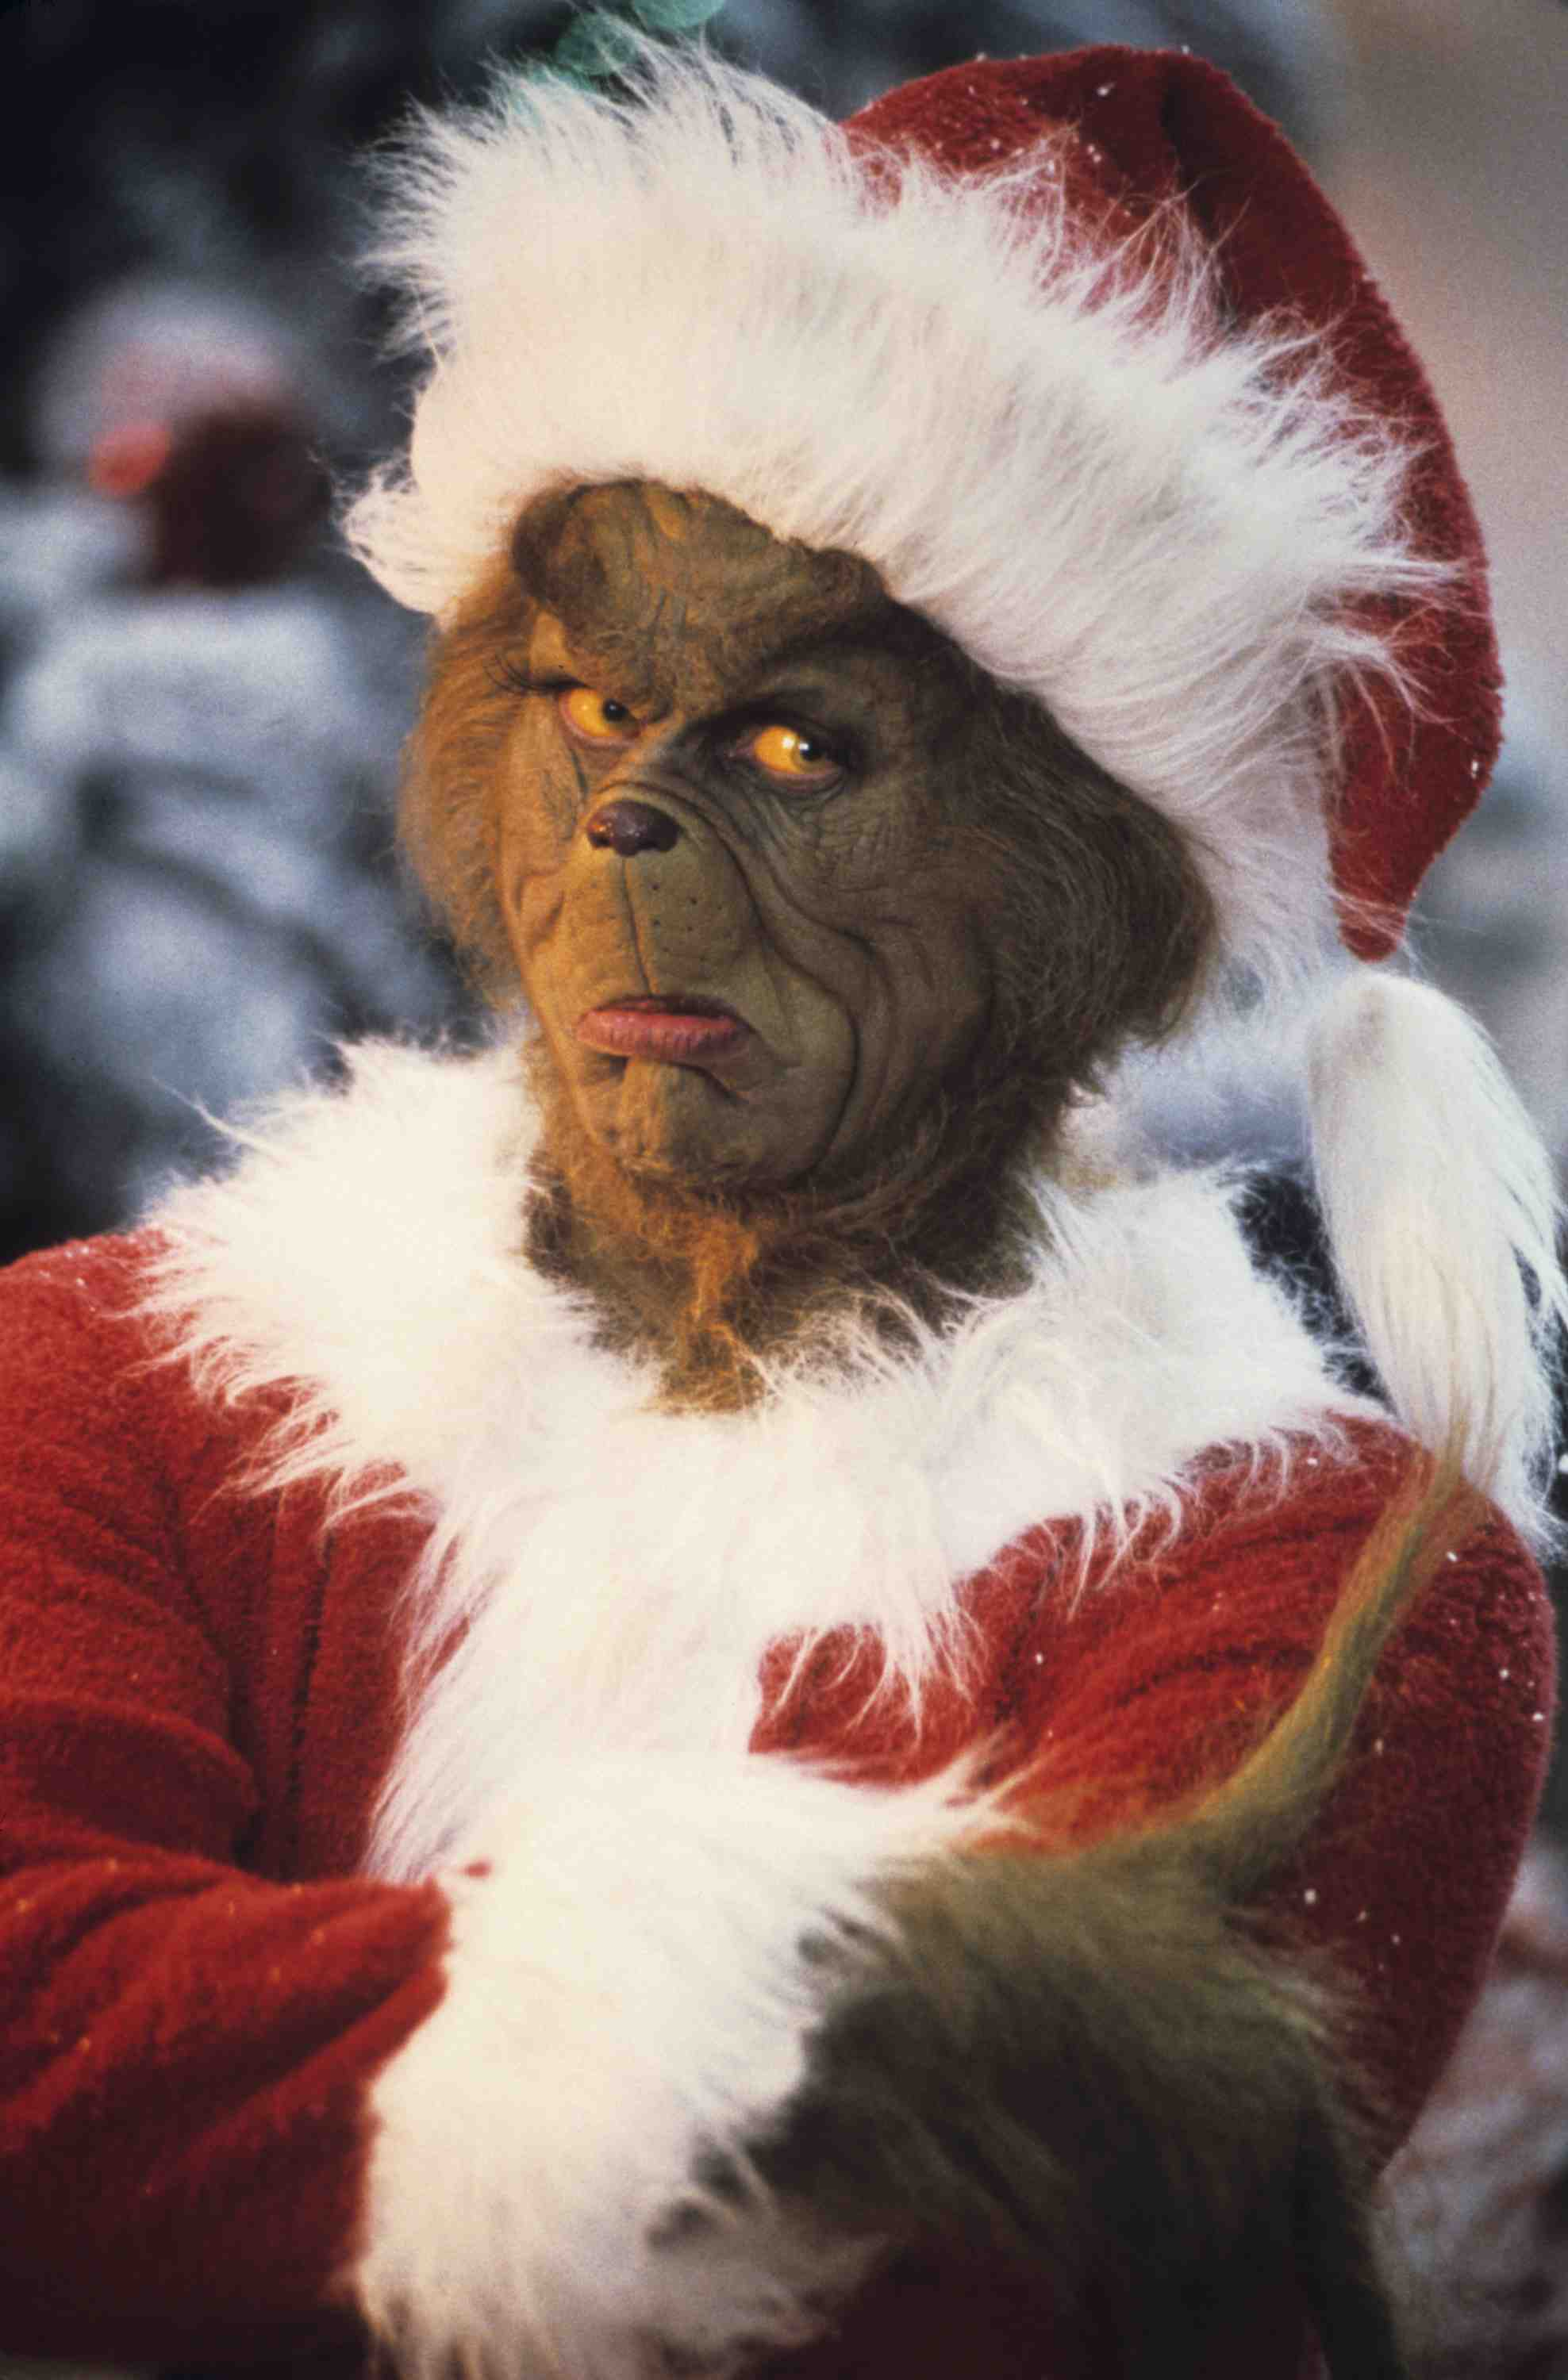 Jim Carrey The Grinch Smile How rude grinch. reply